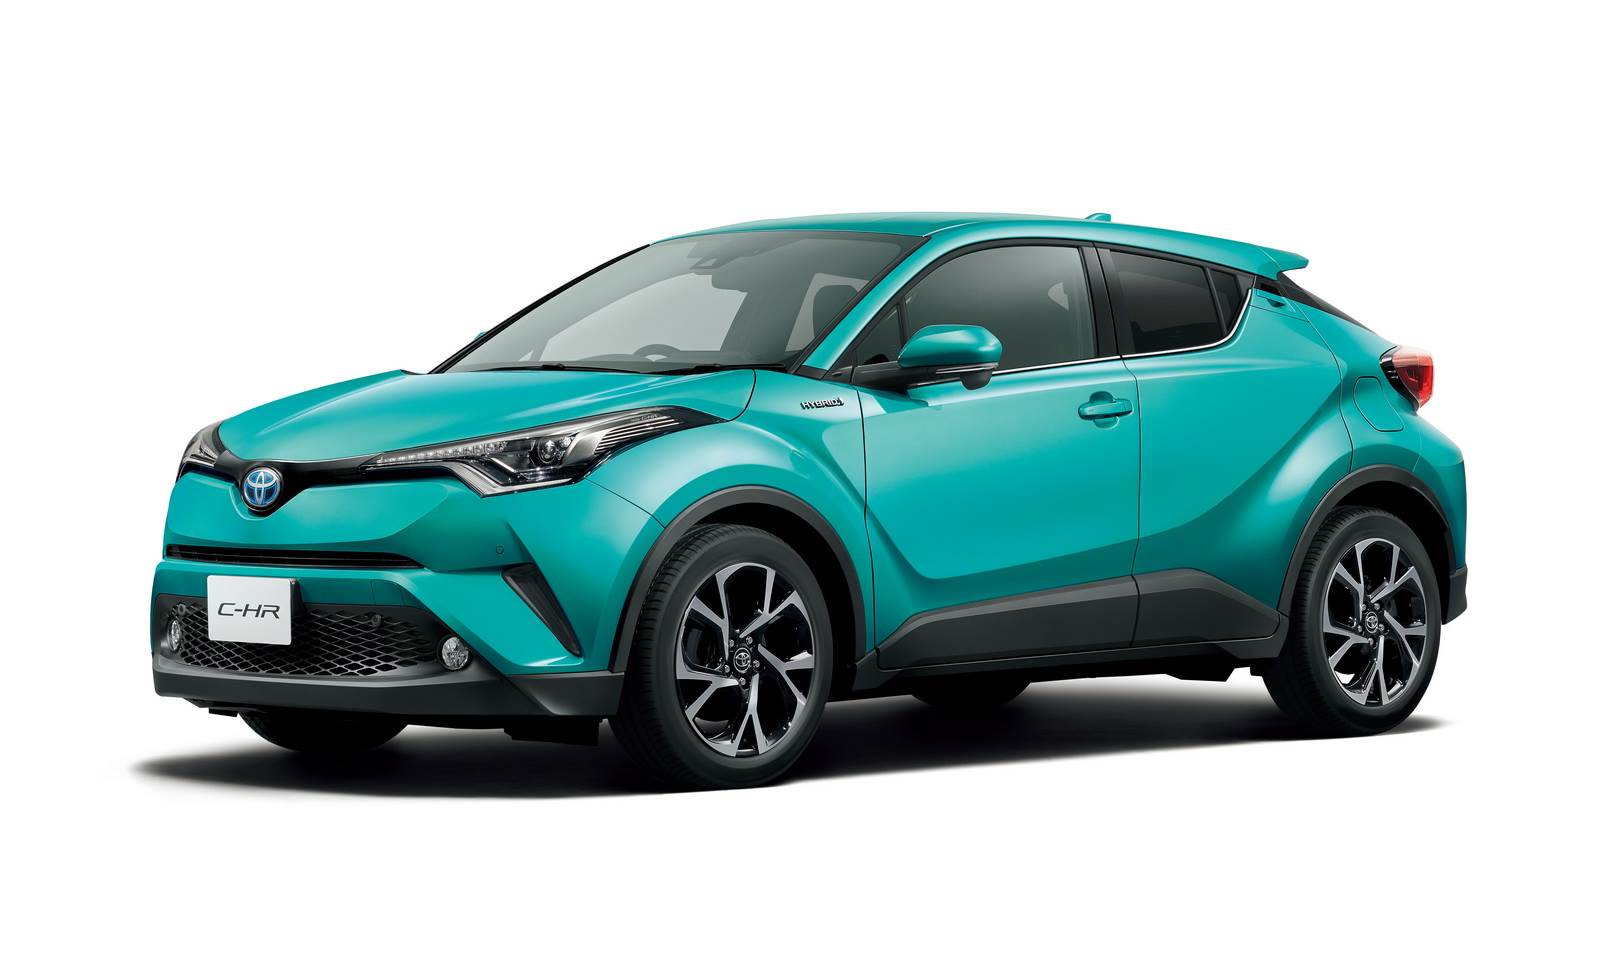 Toyota C-HR image gallery - Autocar India